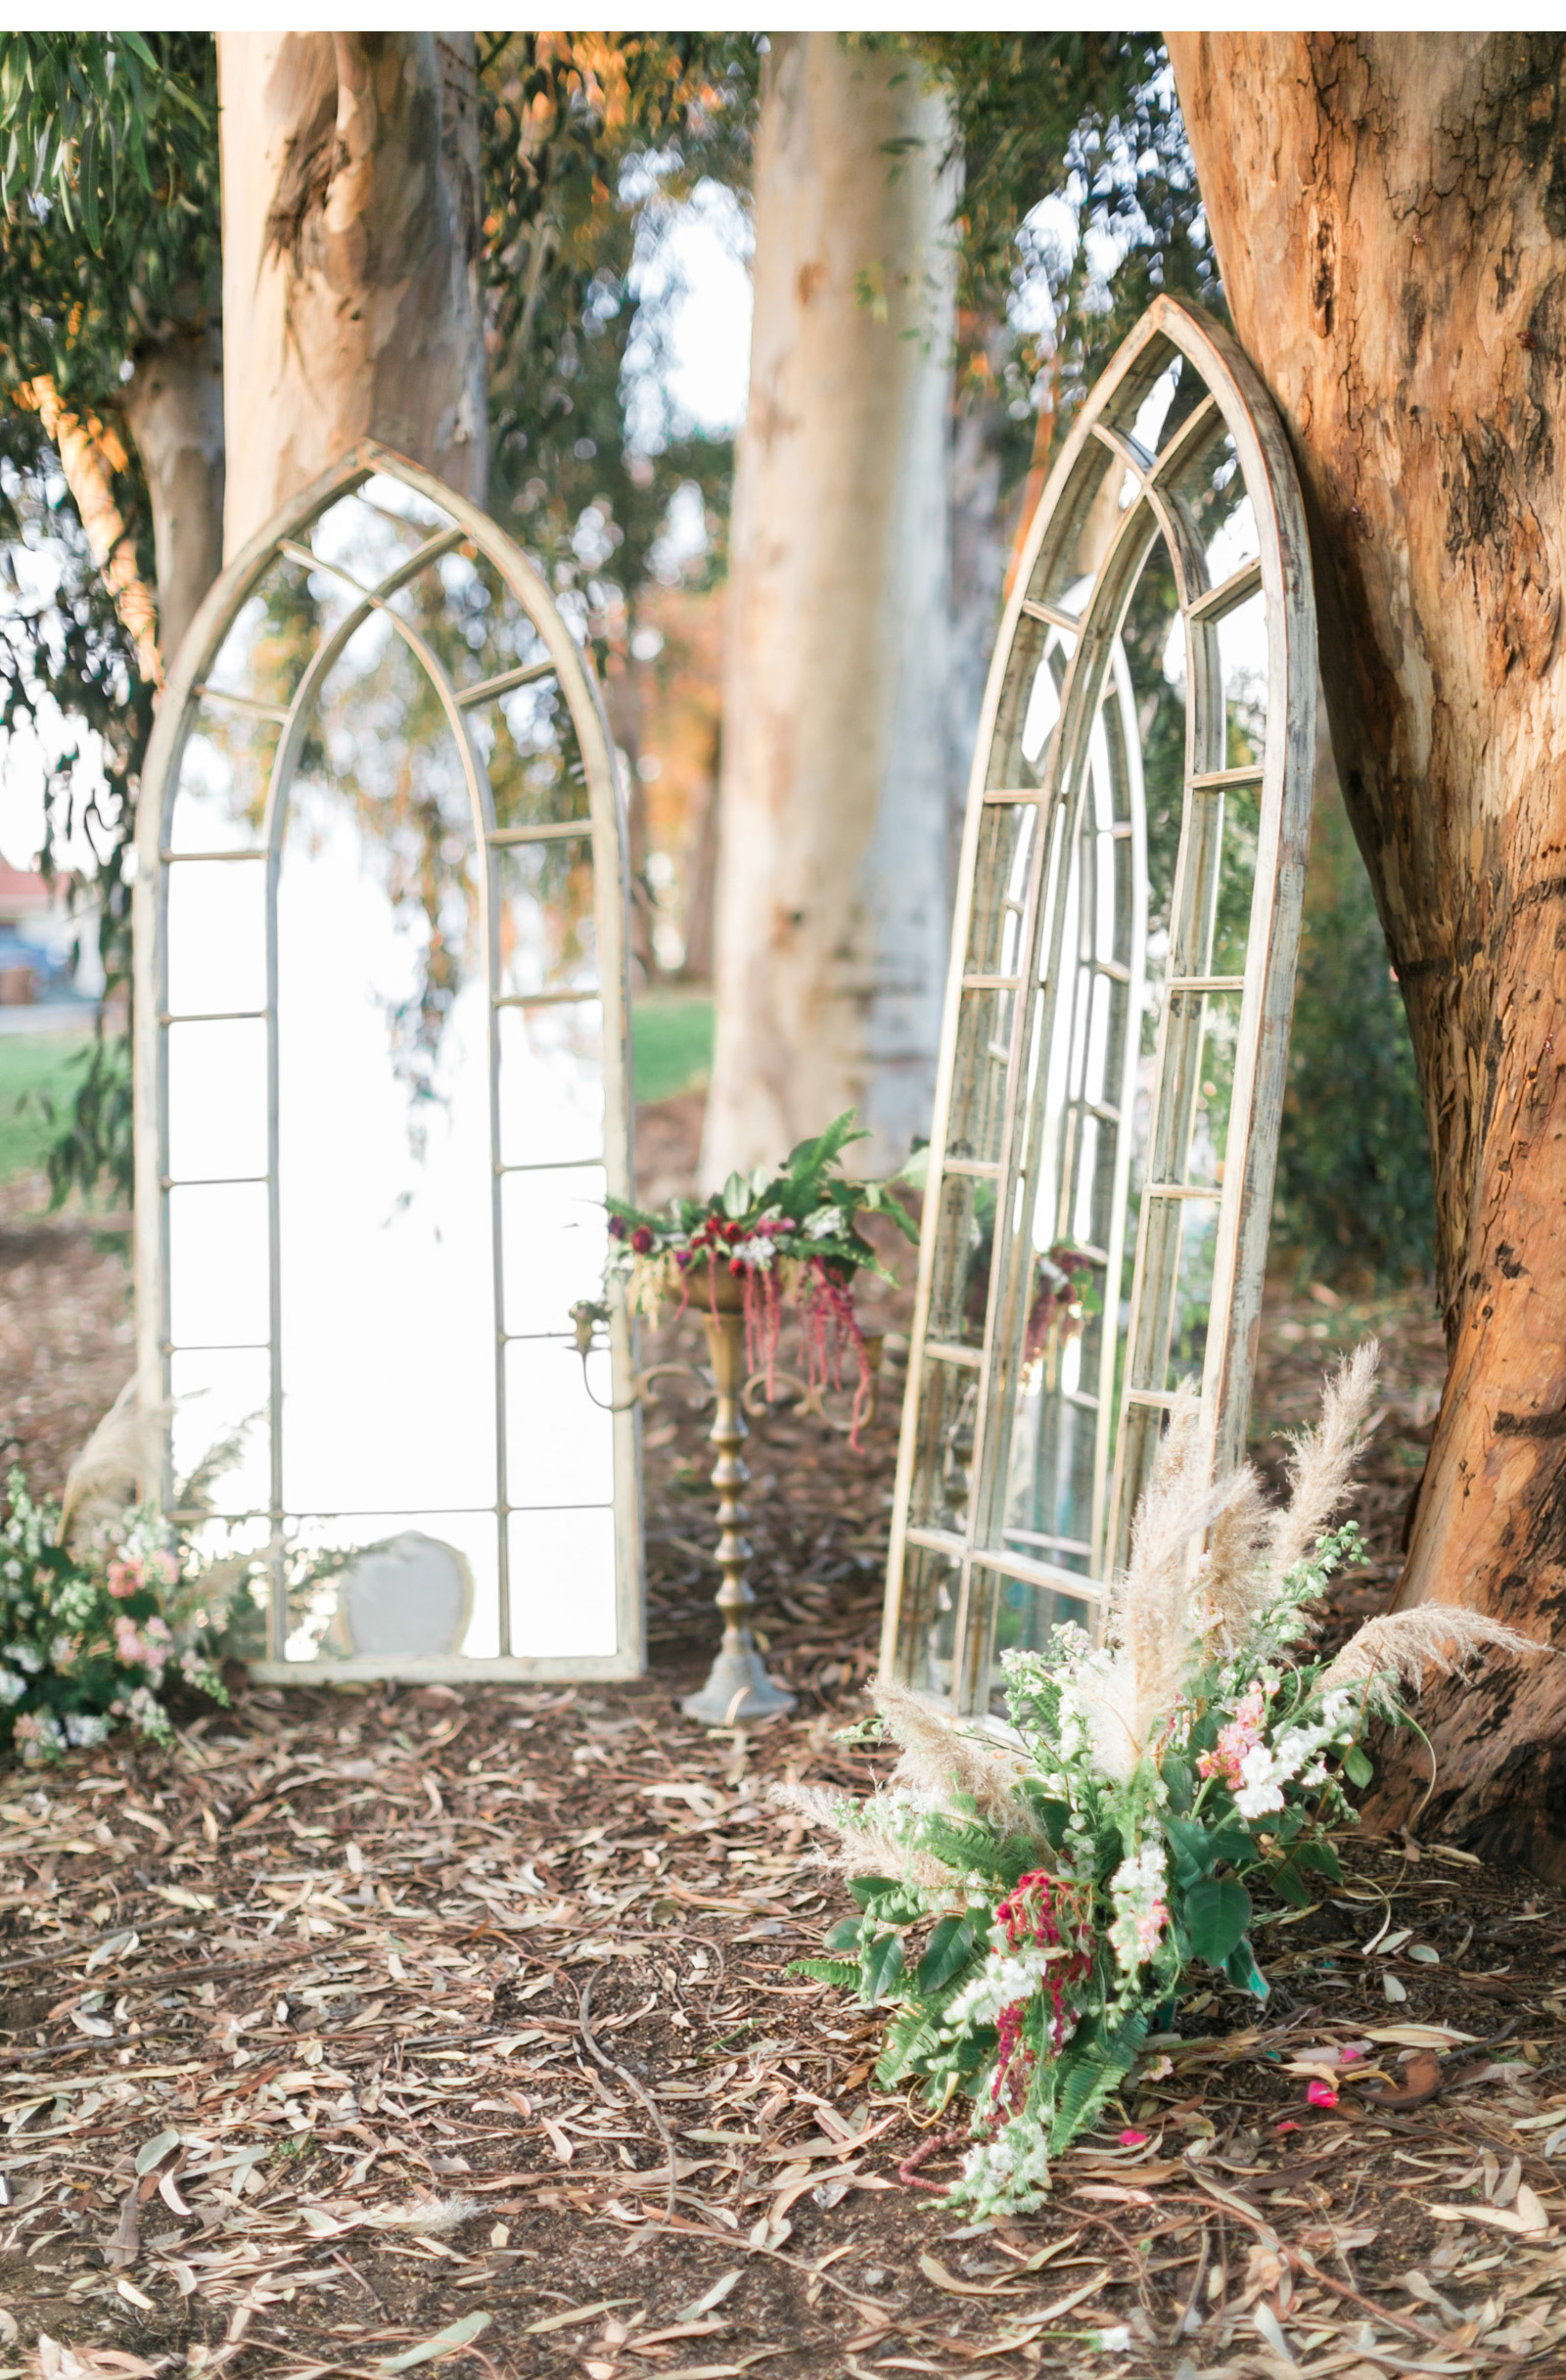 Eucalyptus-Forest-Wedding-Natalie-Schutt-Photography_04.jpg